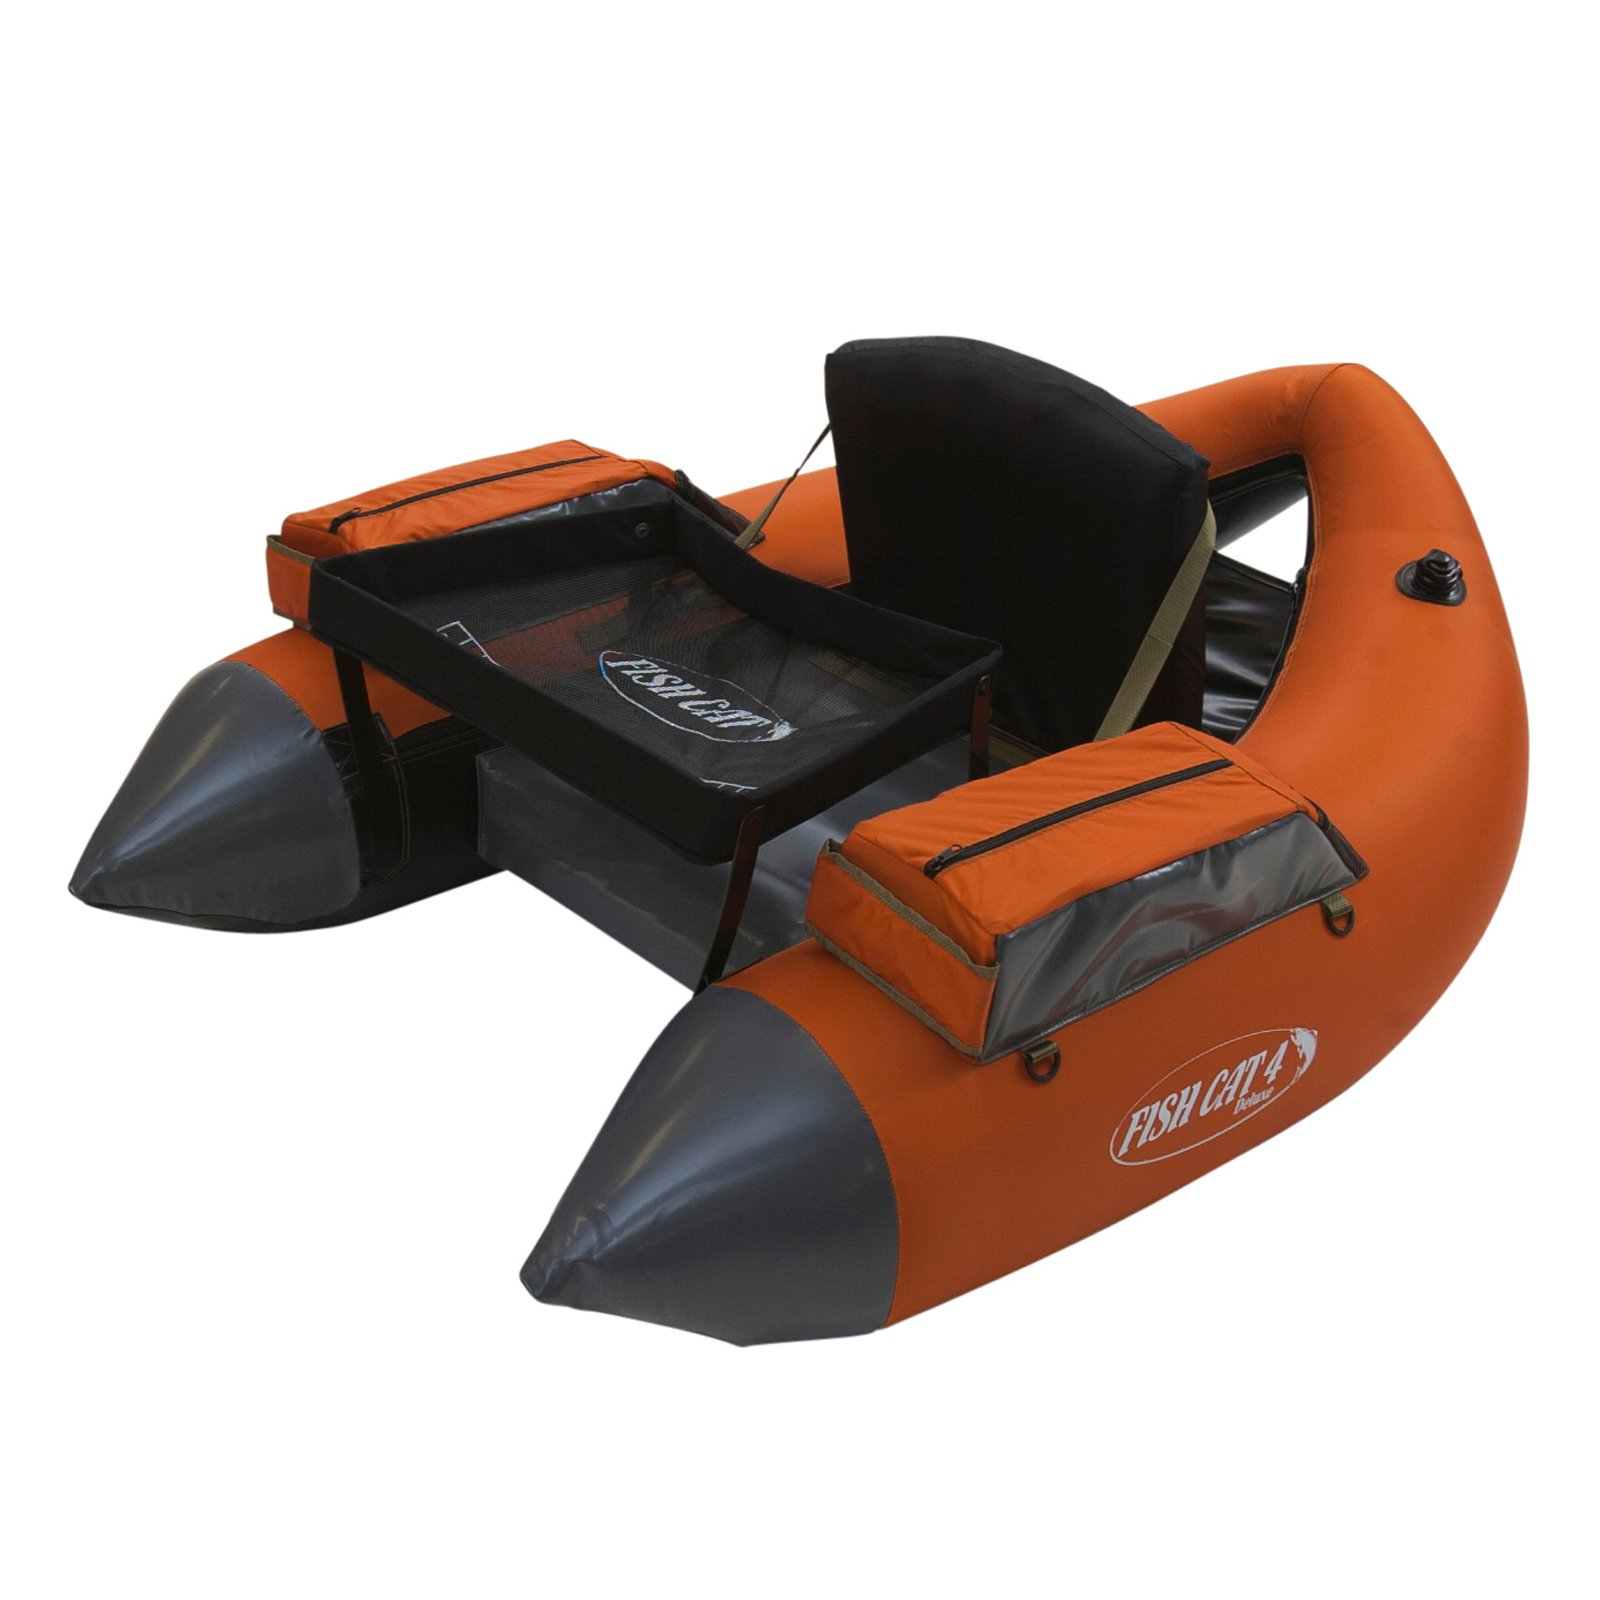 Outcast Fish Cat 4 Deluxe LCS Burnt Orange by Outcast Sporting Gear